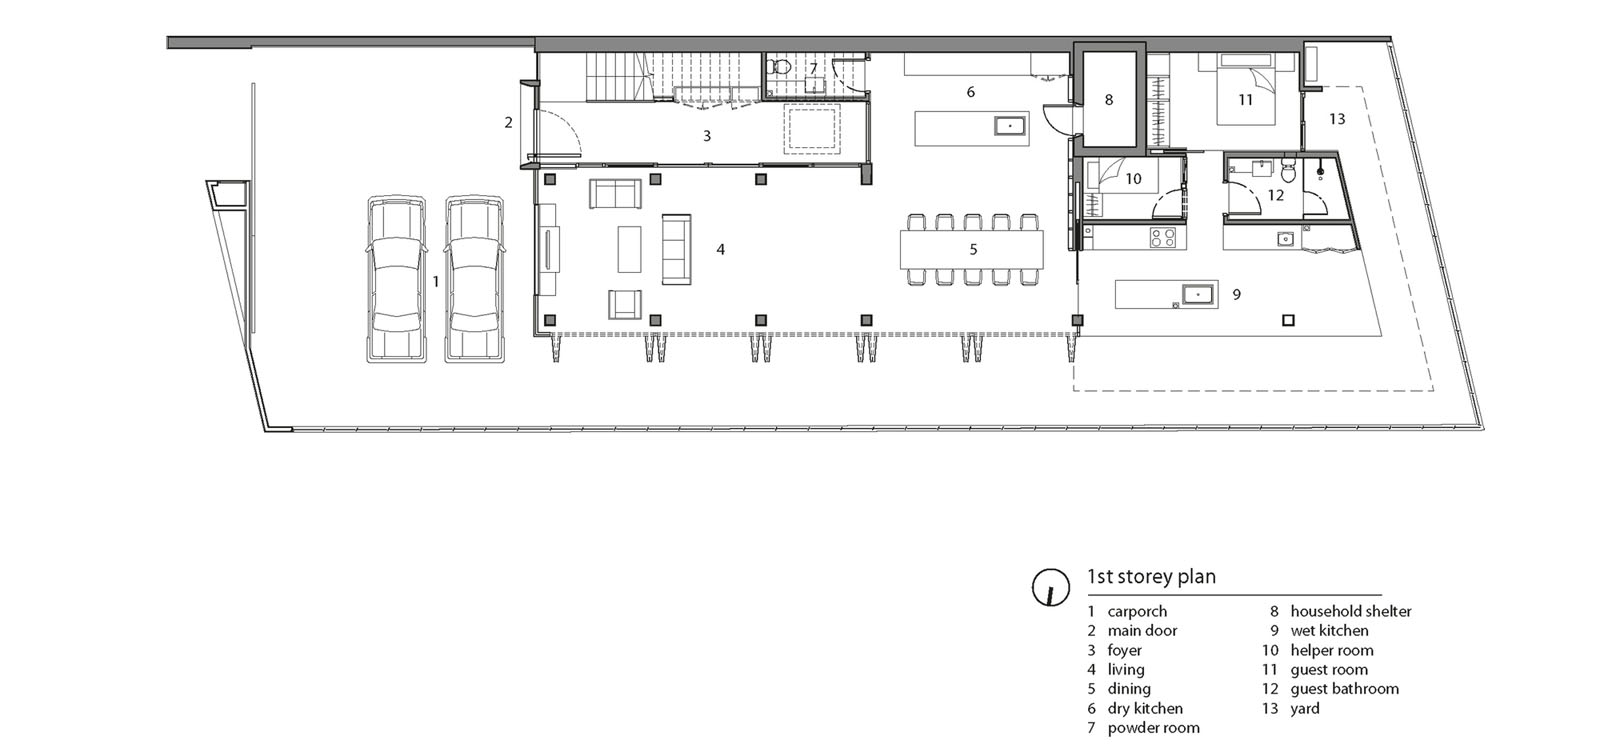 Double Storey Semi Detached House Floor Plan: A Semi-Detached House In Singapore Connects To Its